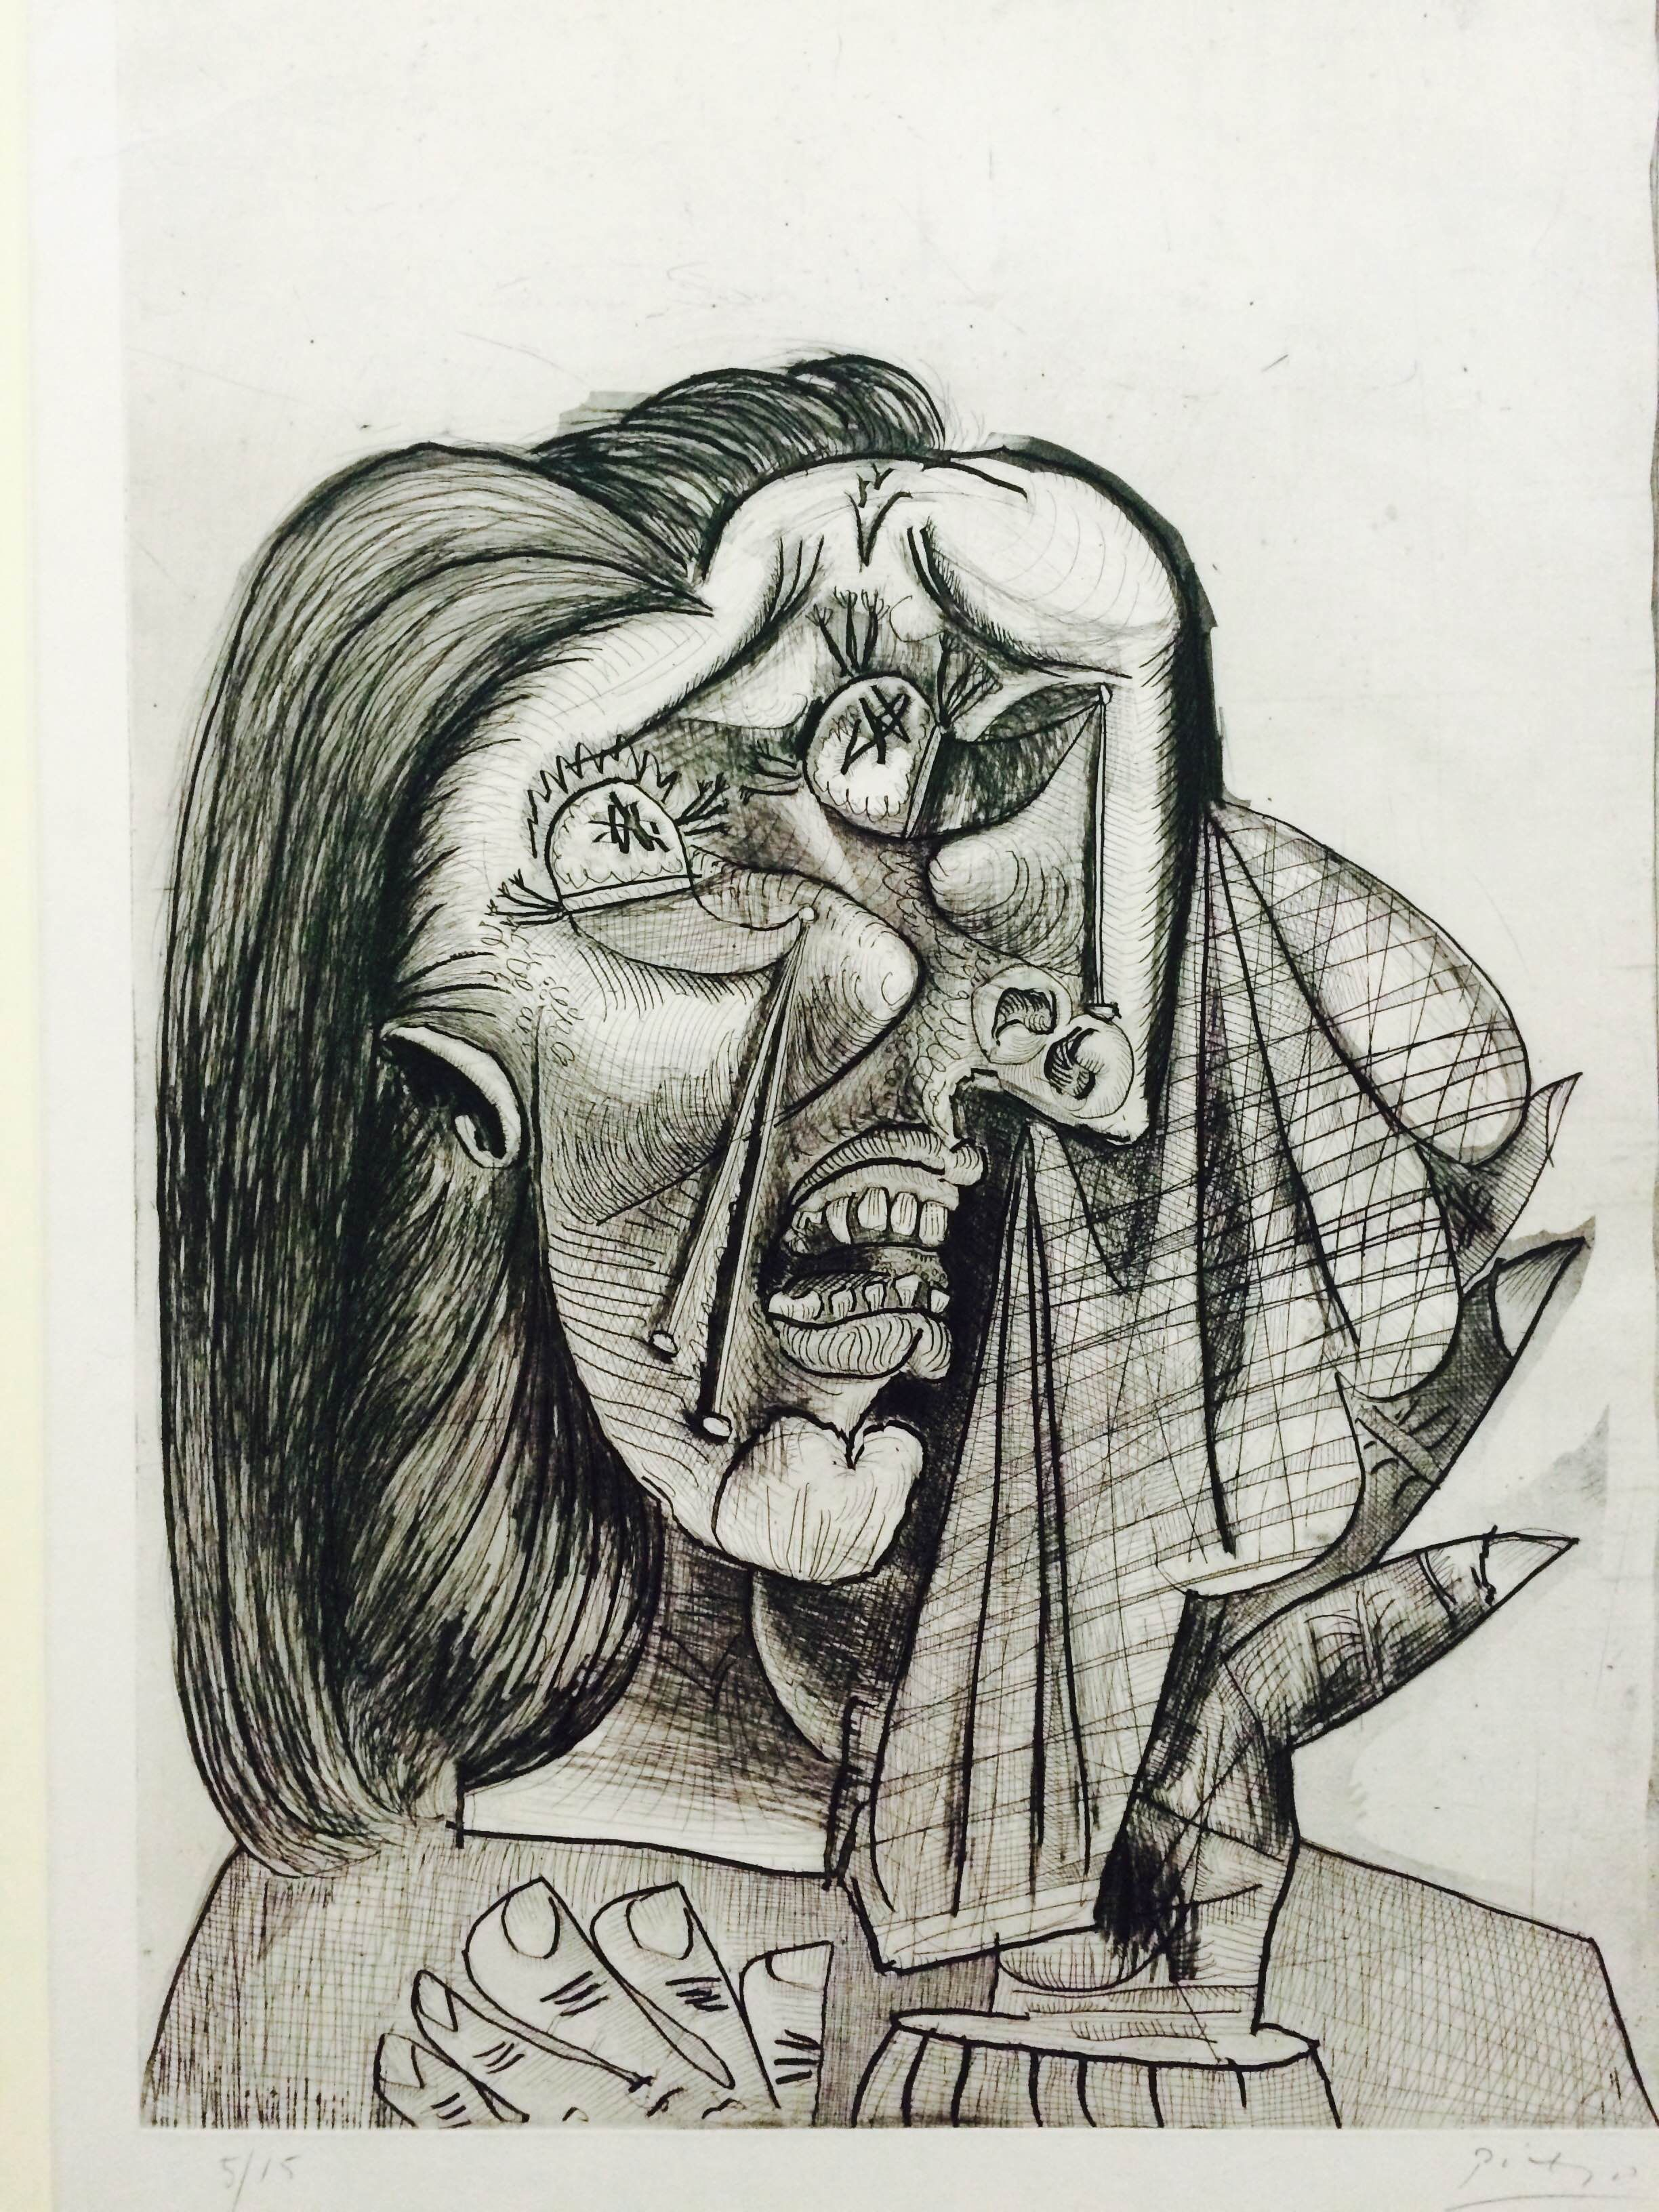 Pablo Picasso 1881 1973 Weeping Woman Frypoint Aquatint And Etching On Paper Picasso Sketches Picasso Art Pablo Picasso Art